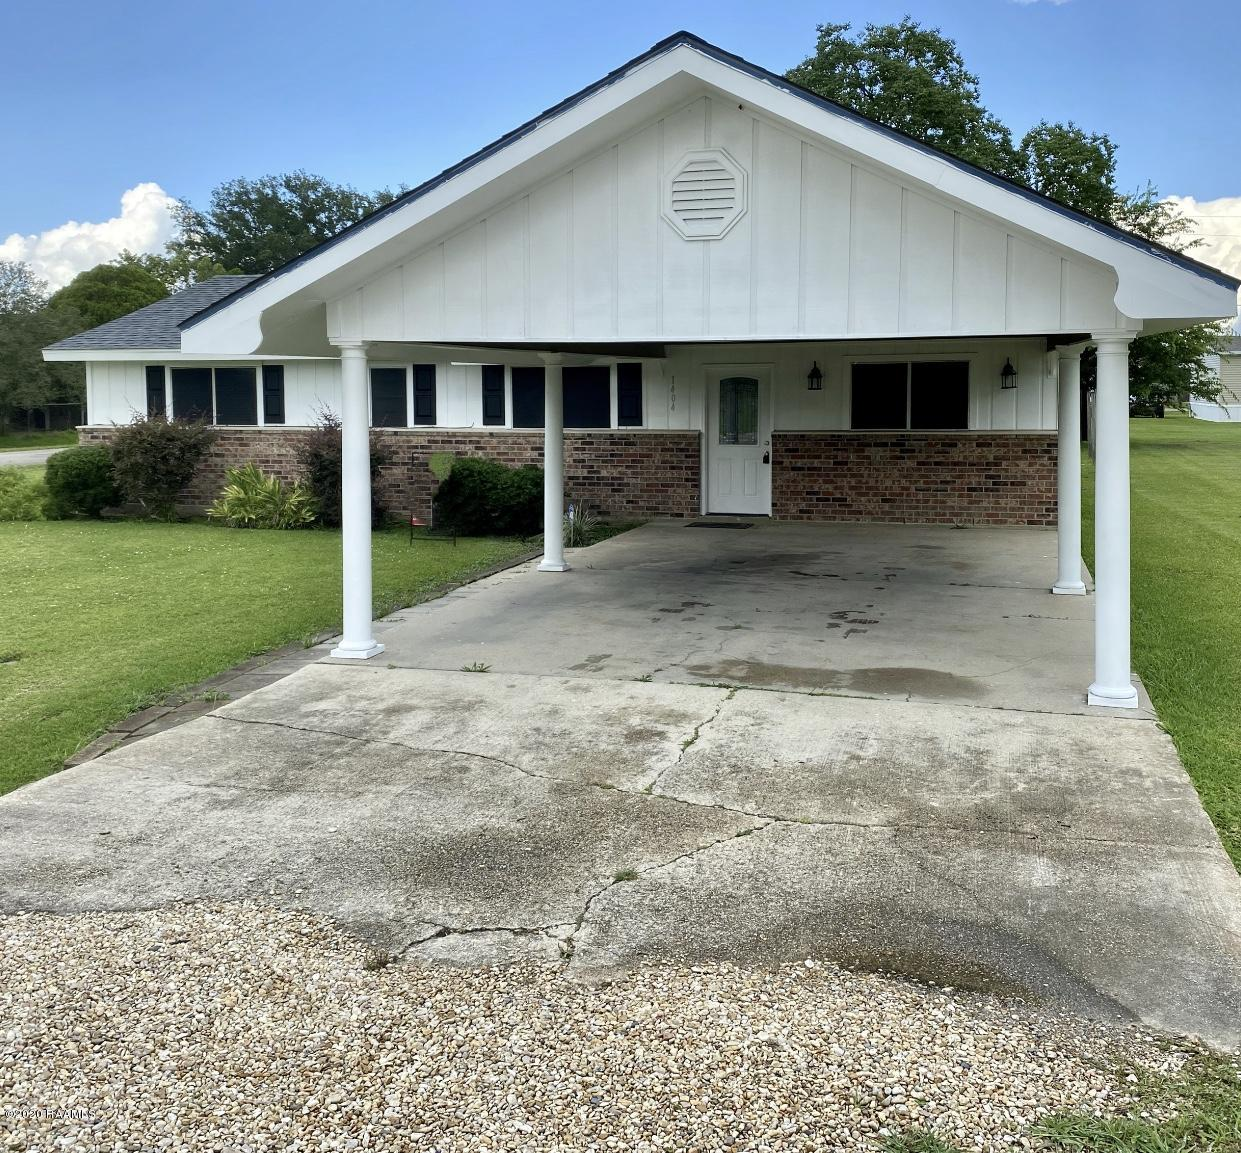 1404 Grambling Street, New Iberia, LA 70560 Photo #2